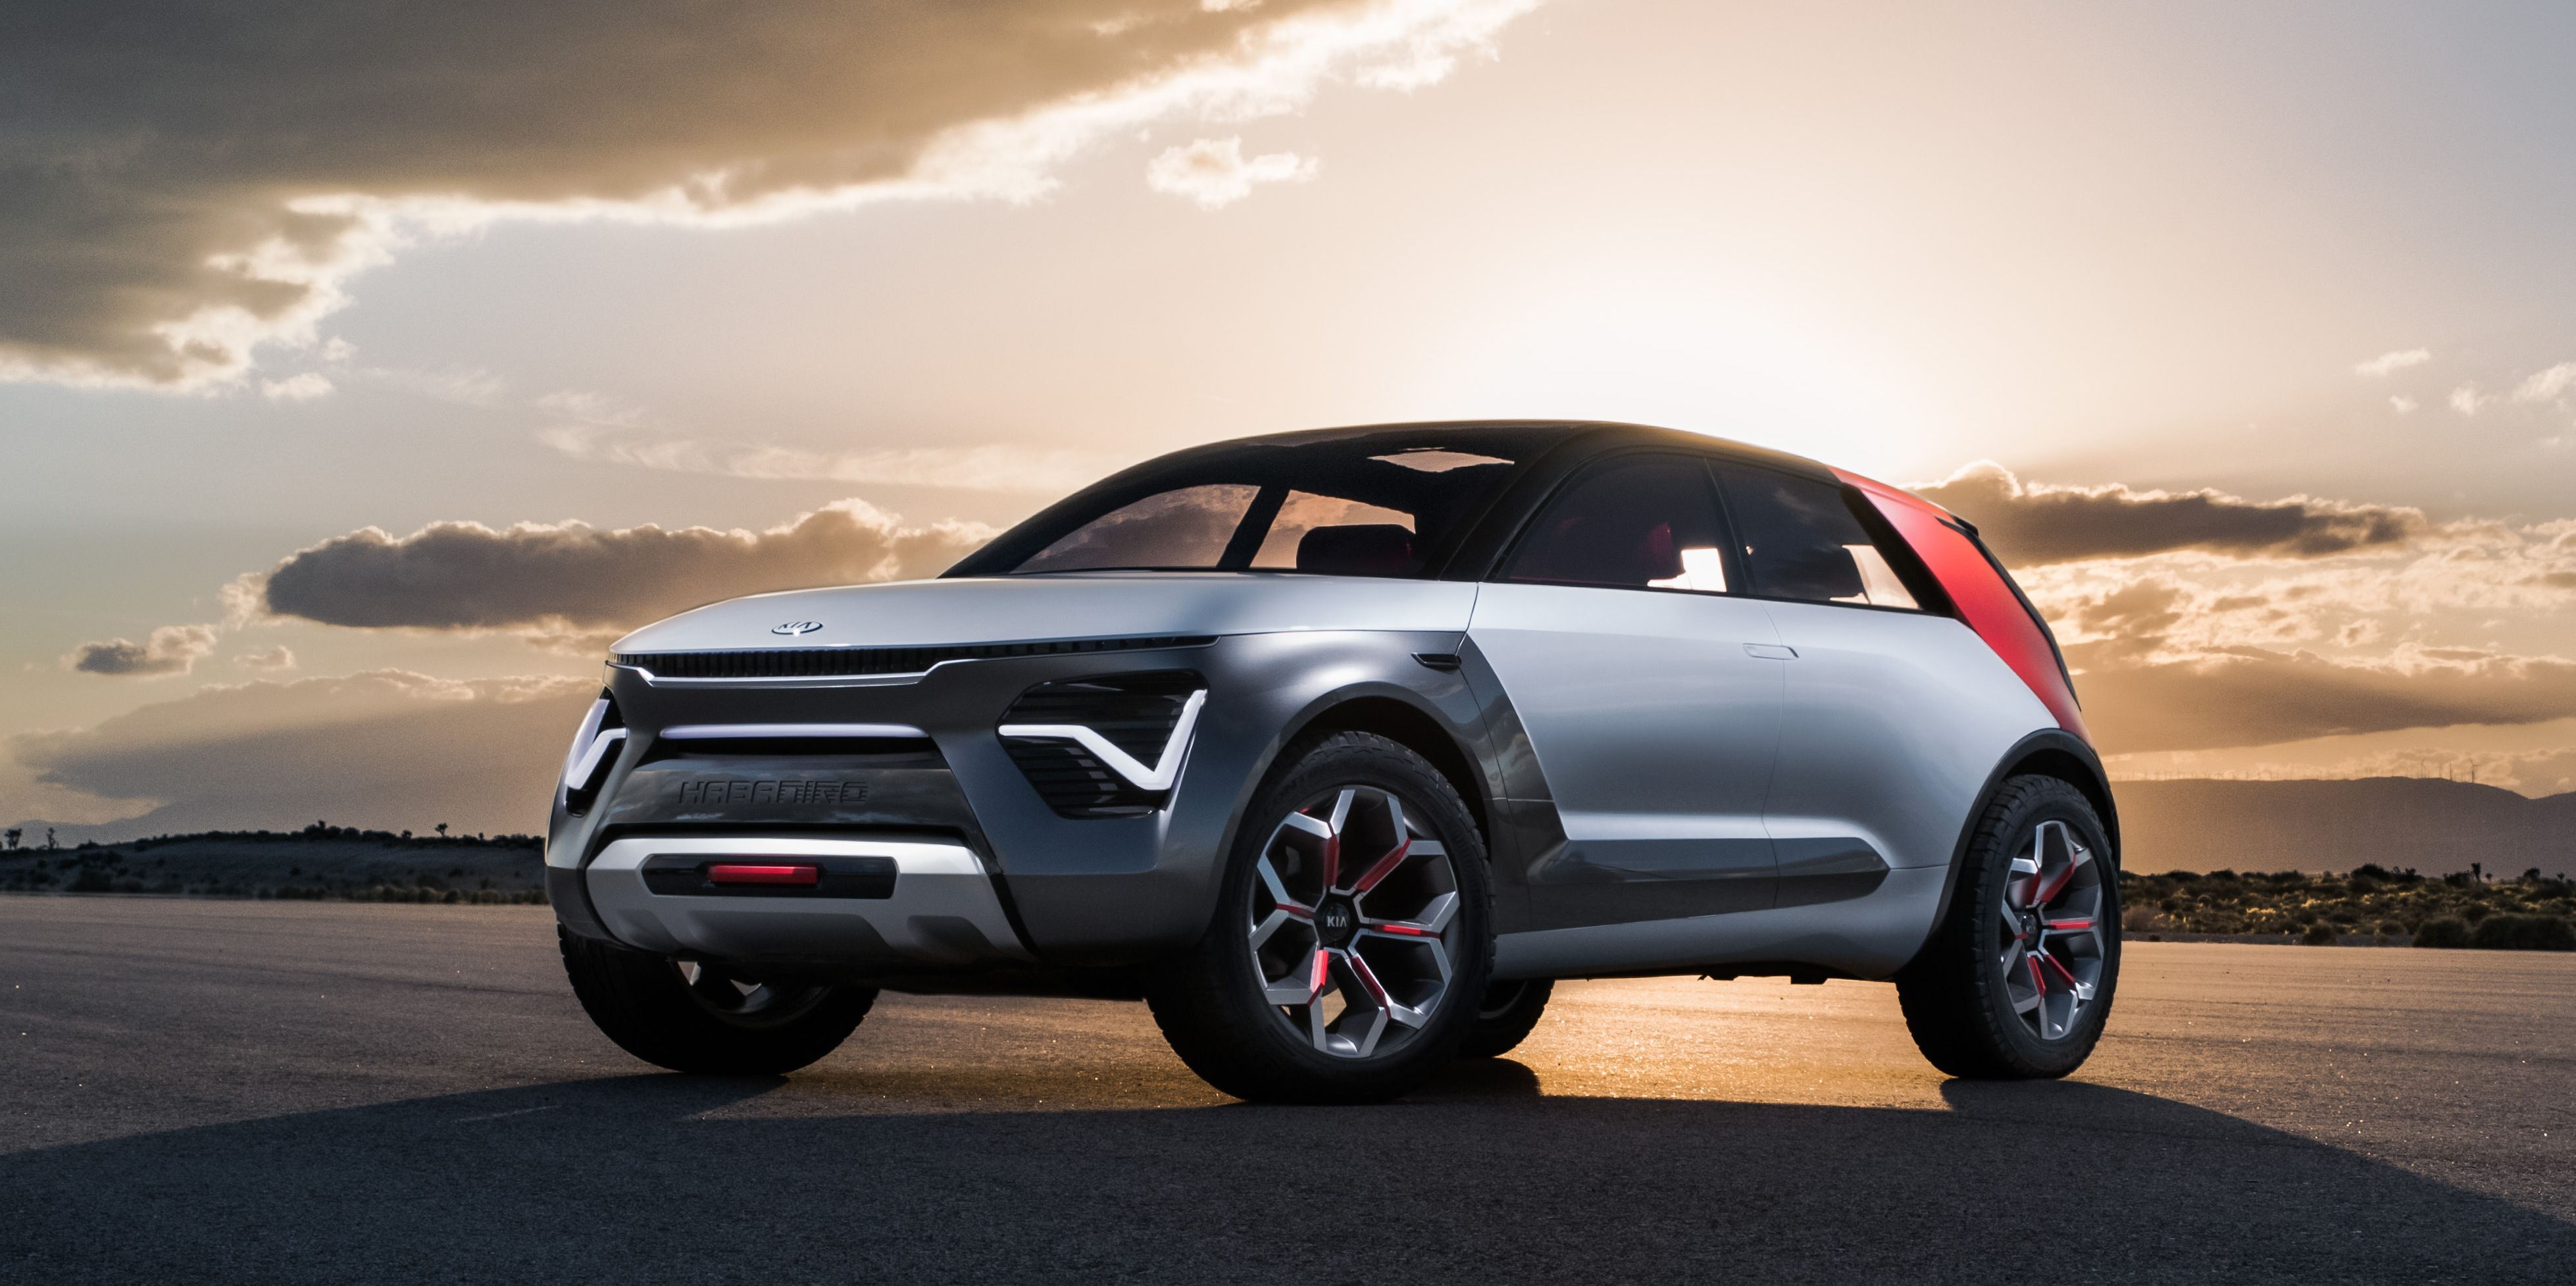 The Kia HabaNiro Concept Is an Electric Crossover That Tries to Be Much More